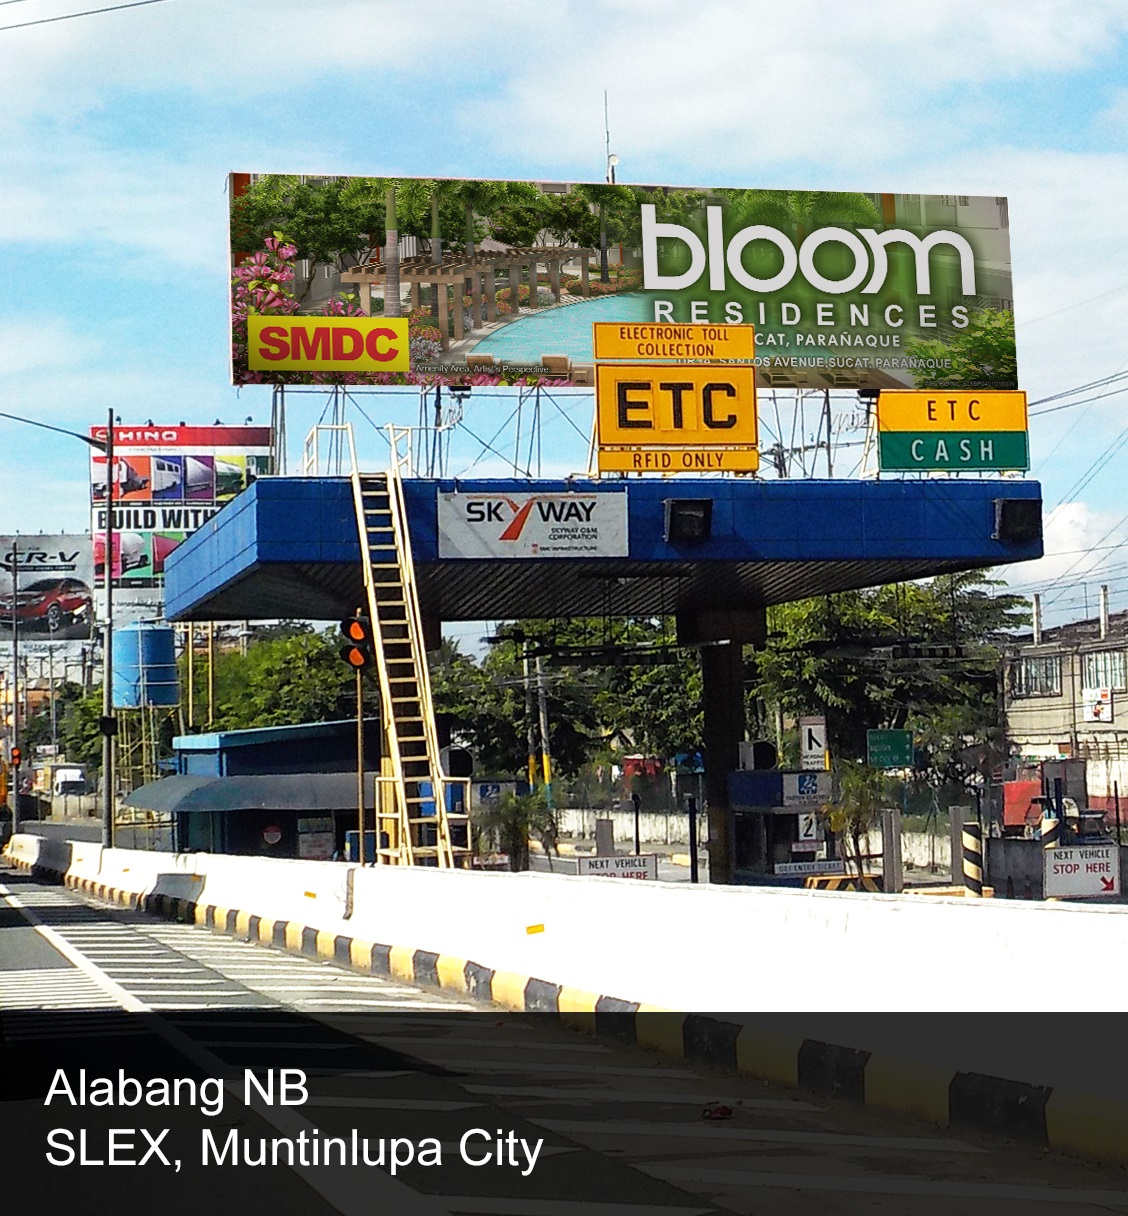 DOOH-ph-billboard- alabang-northbound-SLEX-muntinlupa-city.jpg